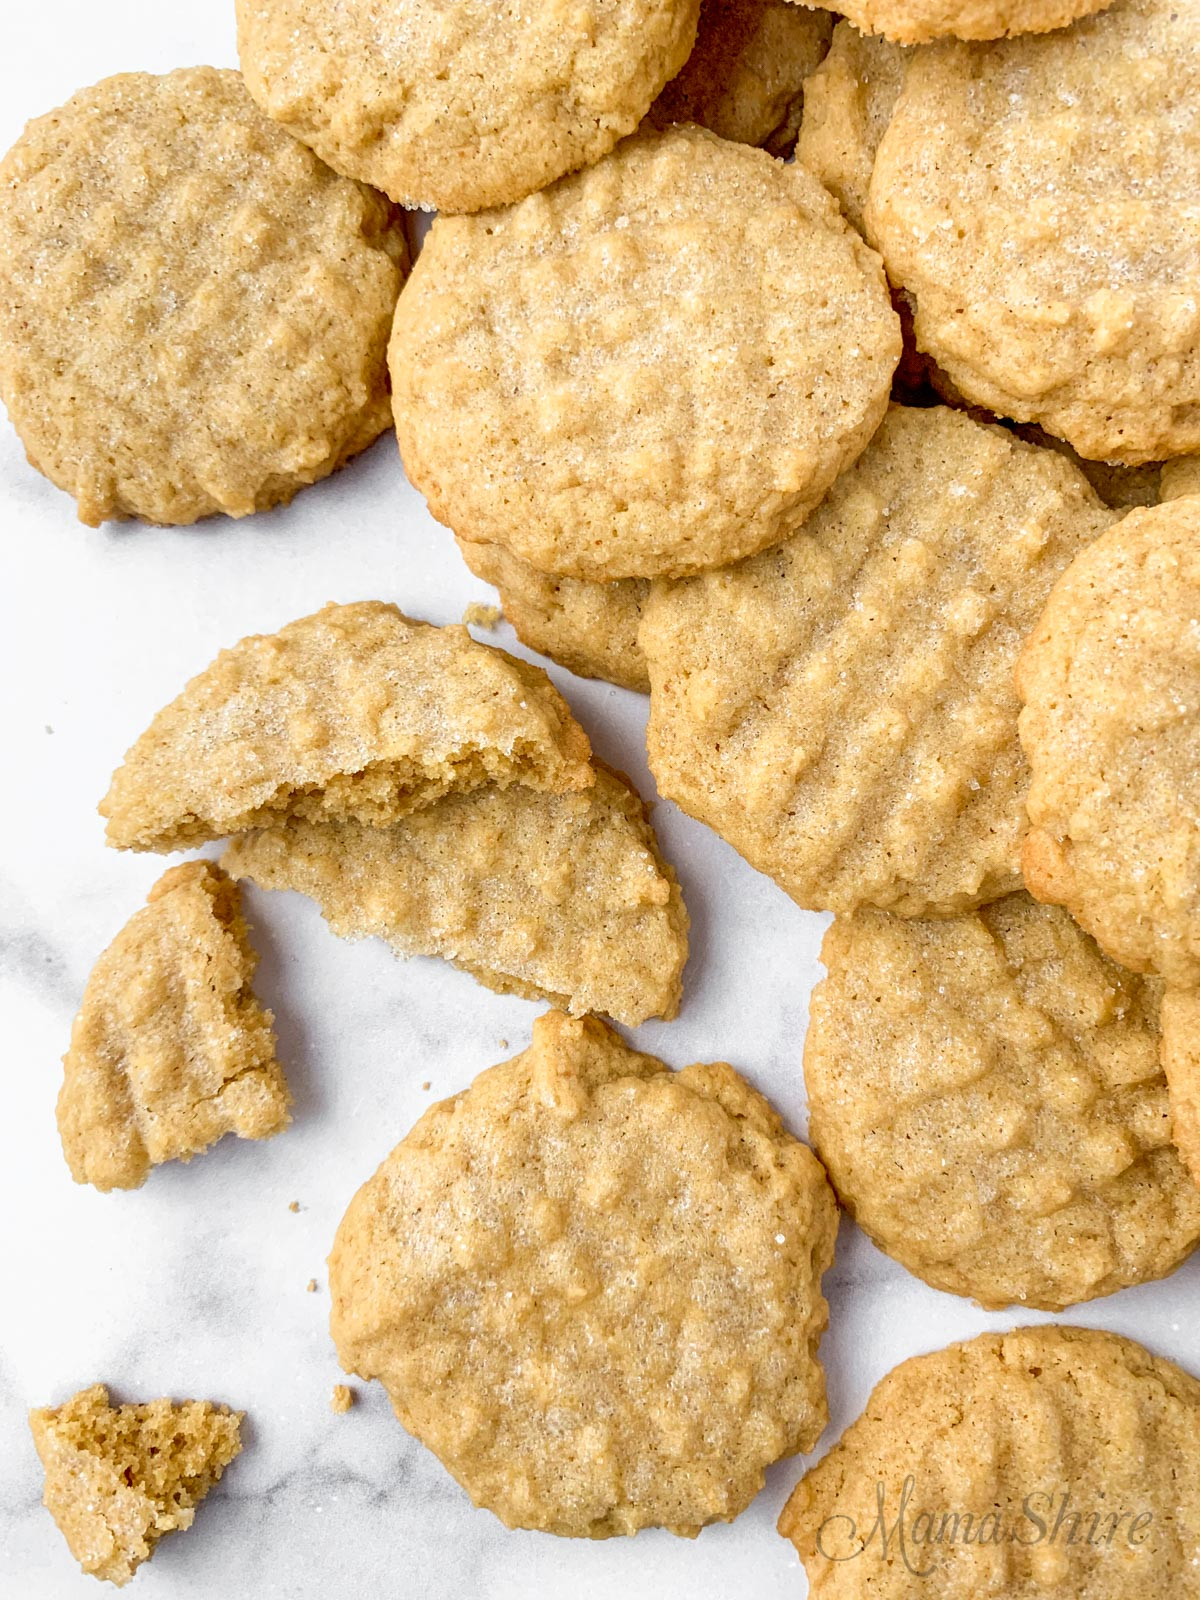 A pile of soft peanut butter cookies made from a gluten-free and dairy-free recipe.